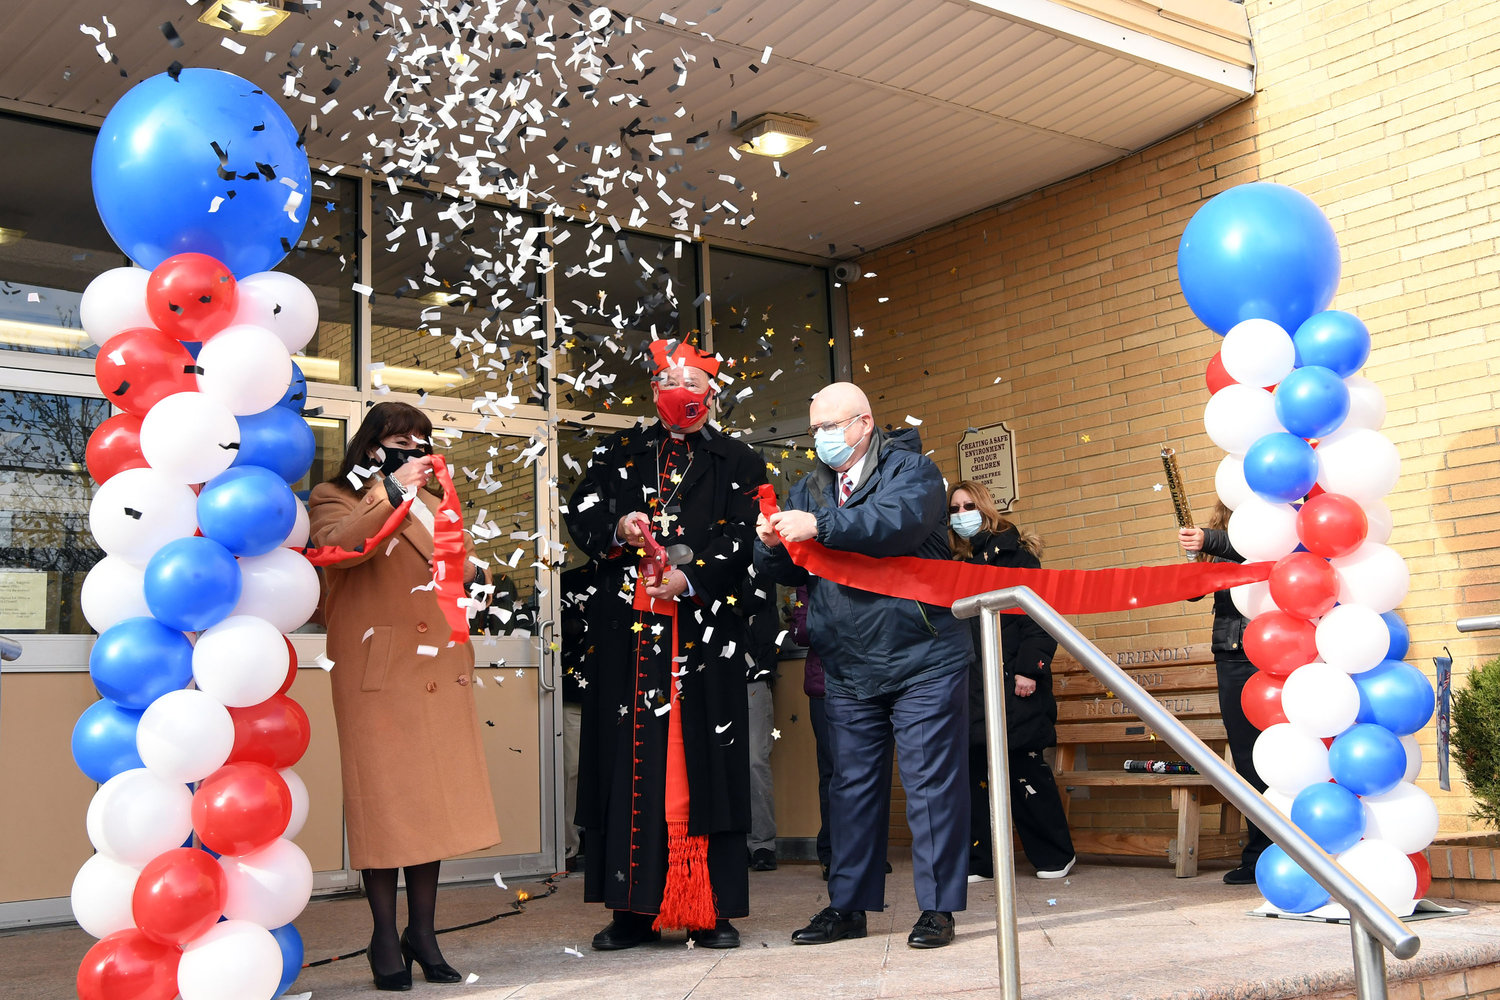 Cardinal Dolan cuts the ribbon at the dedication, assisted by Zoilita Herrera, regional superintendent of Staten Island Catholic schools, left, and Michael Deegan, superintendent of schools in the archdiocese, right.